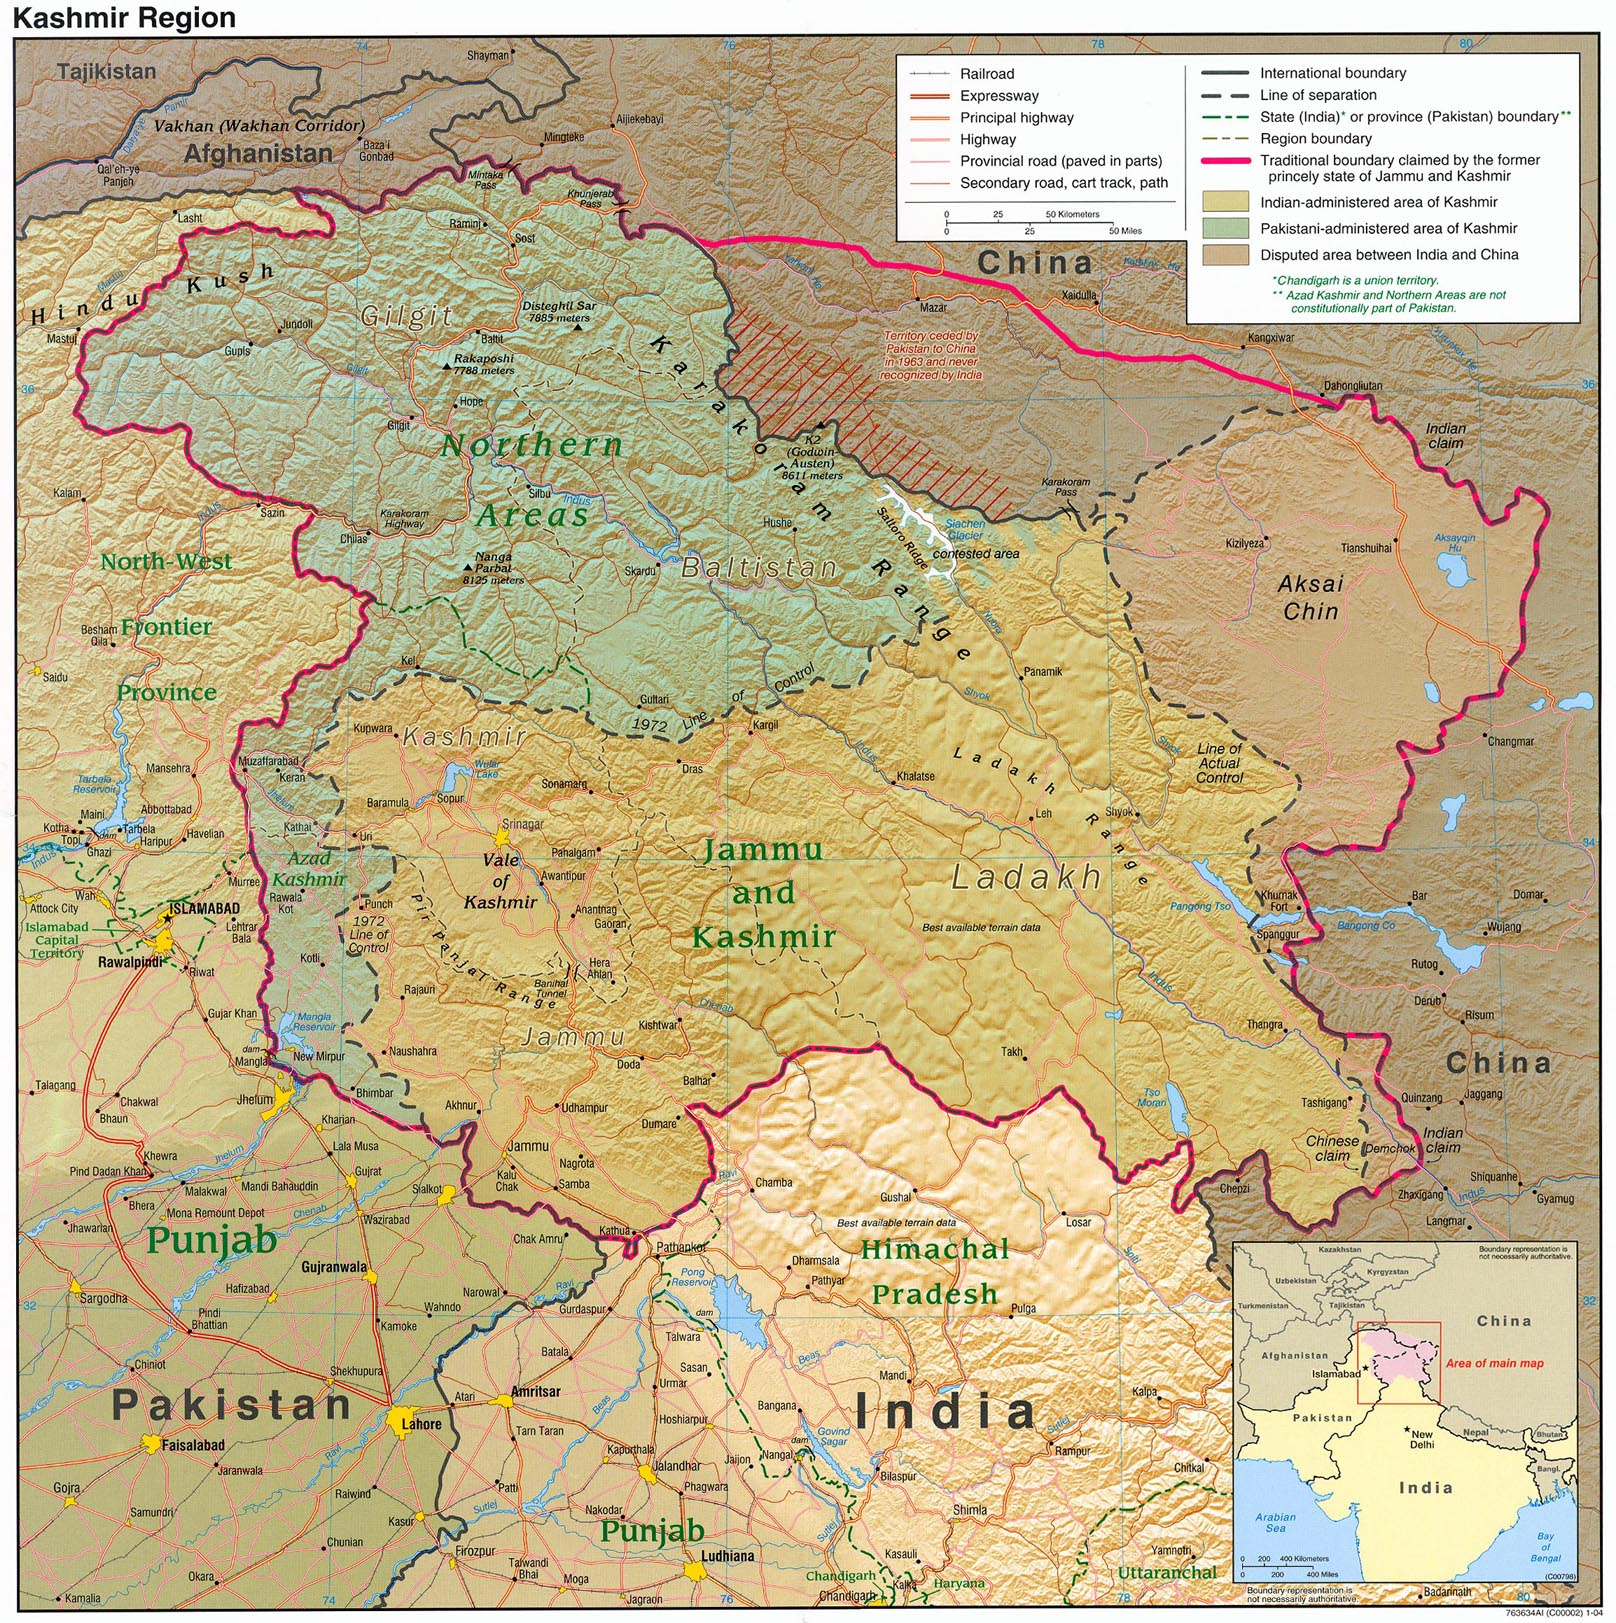 Kashmir Region Shaded Relief Map